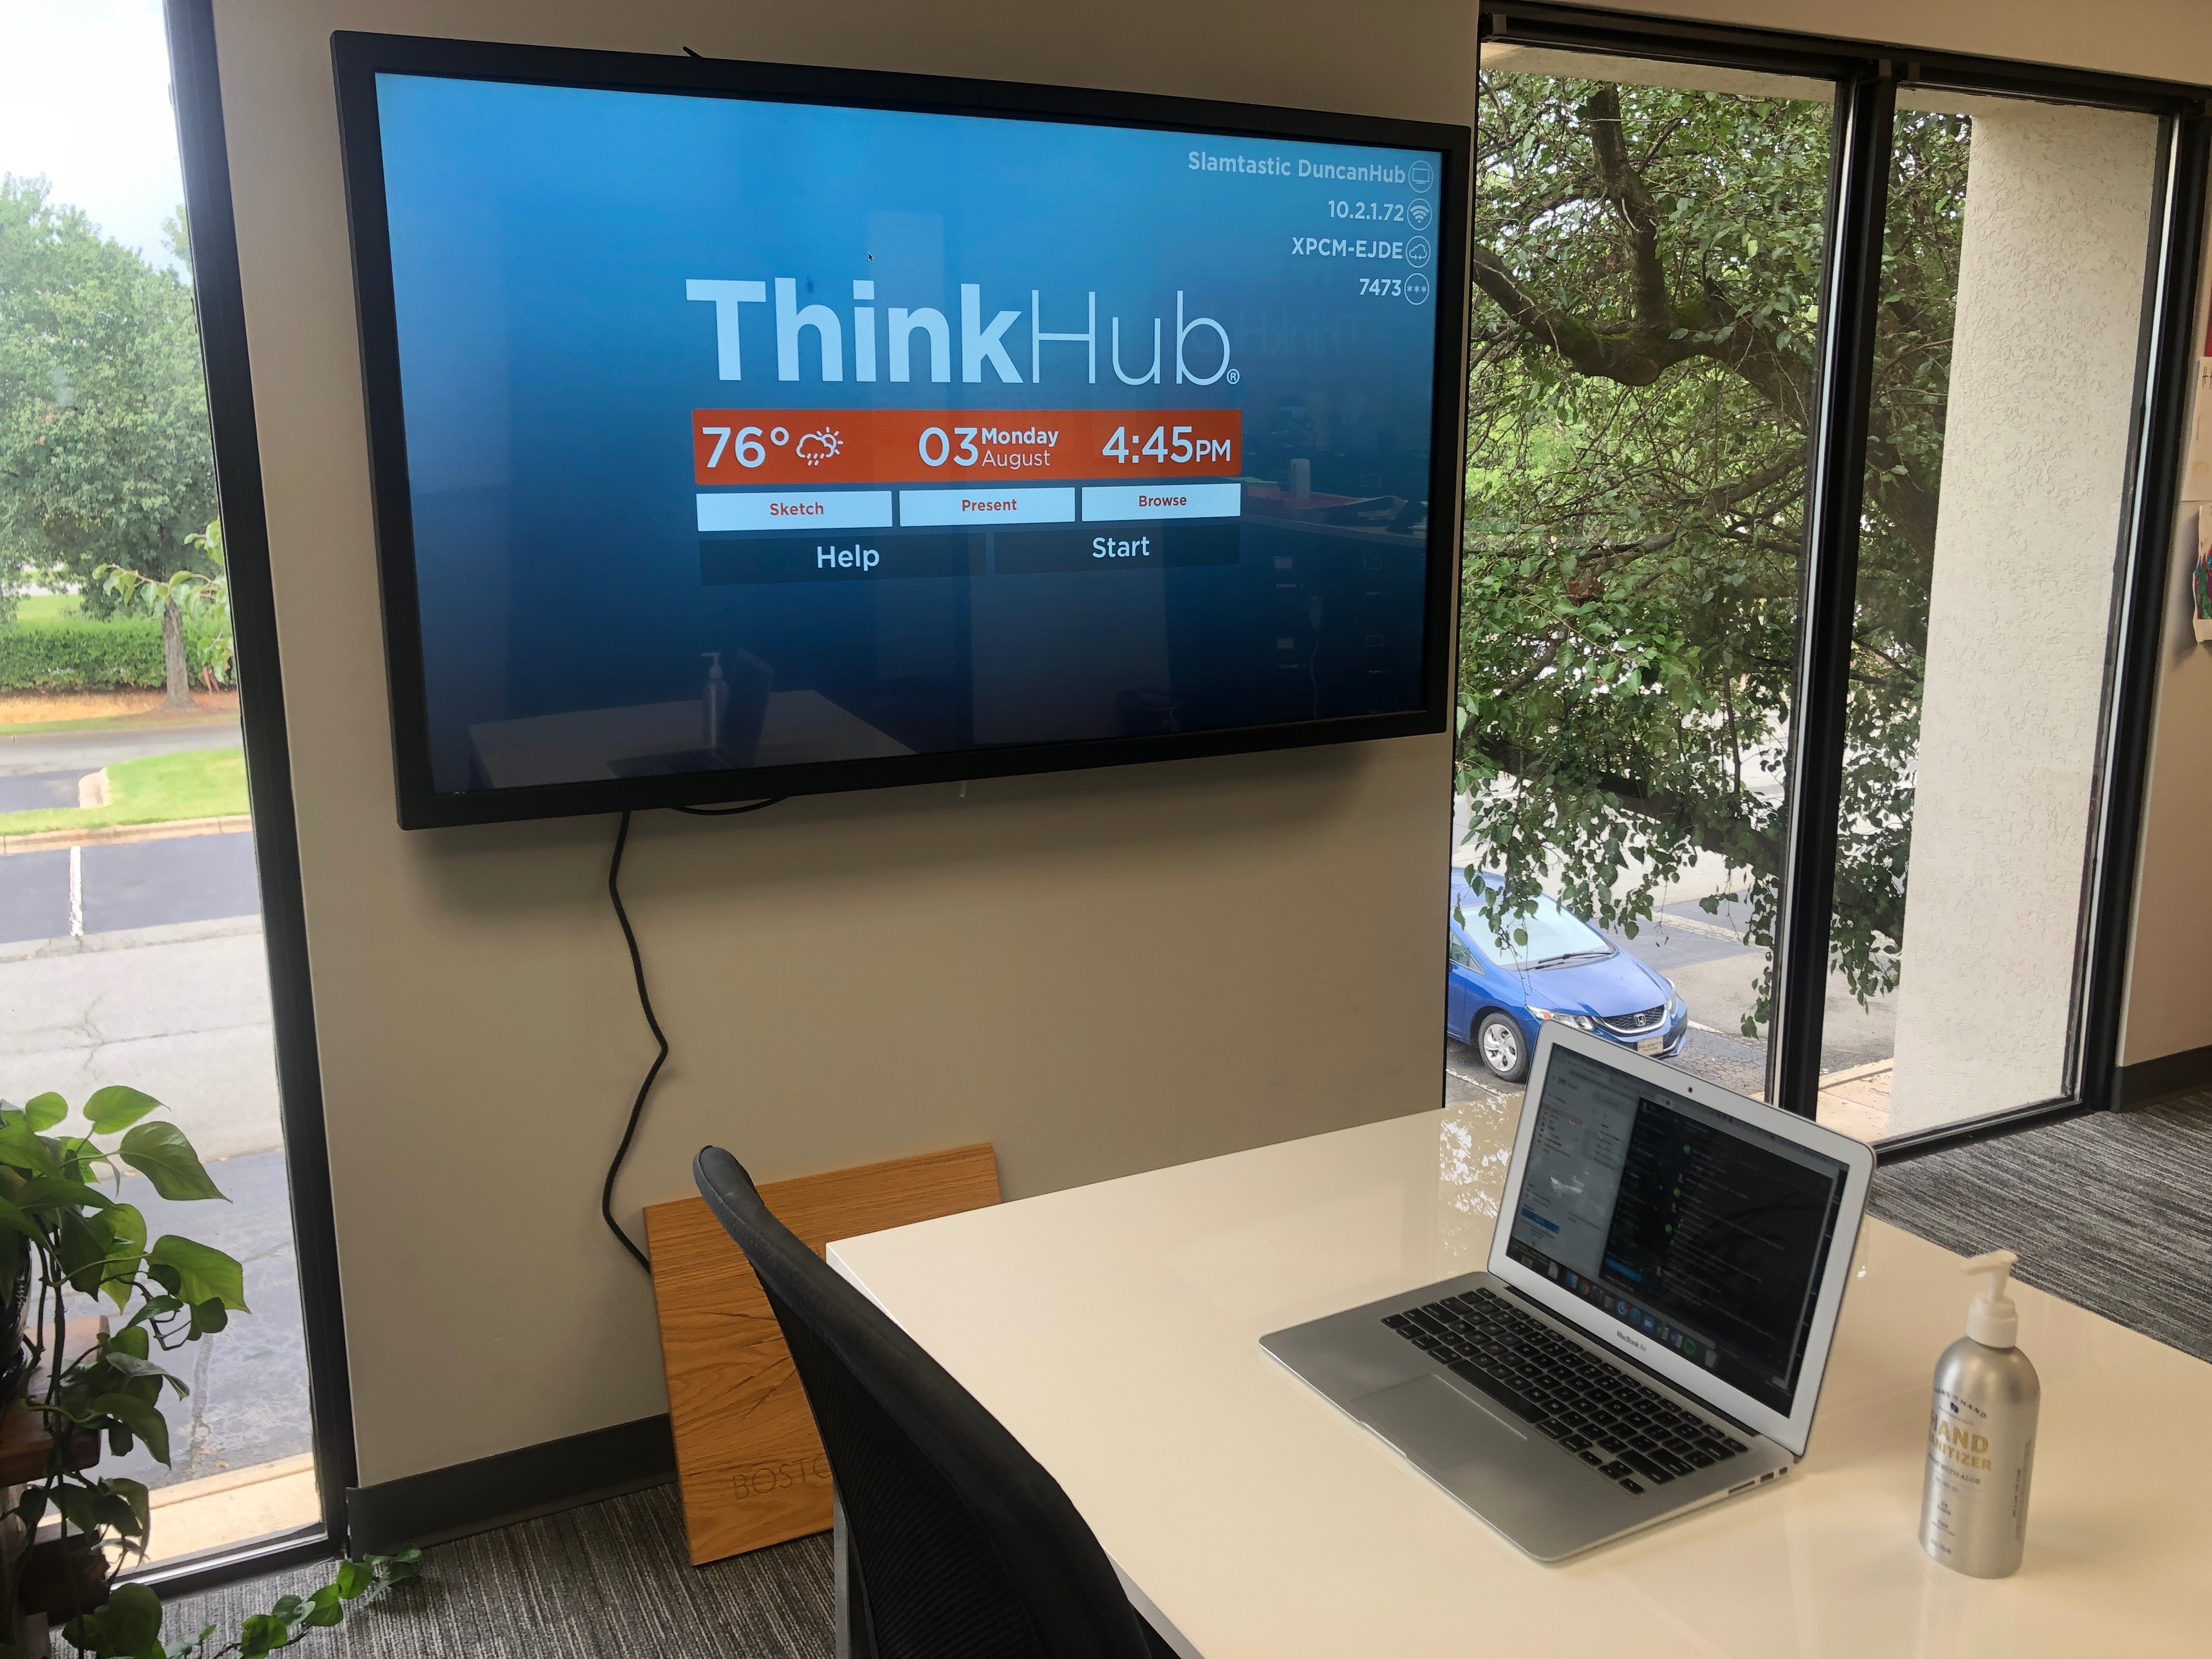 T1V-work-from-anywhere-diaries-38-year-old-vp-of-hr-thinkhub-collaboration-software-byod-office